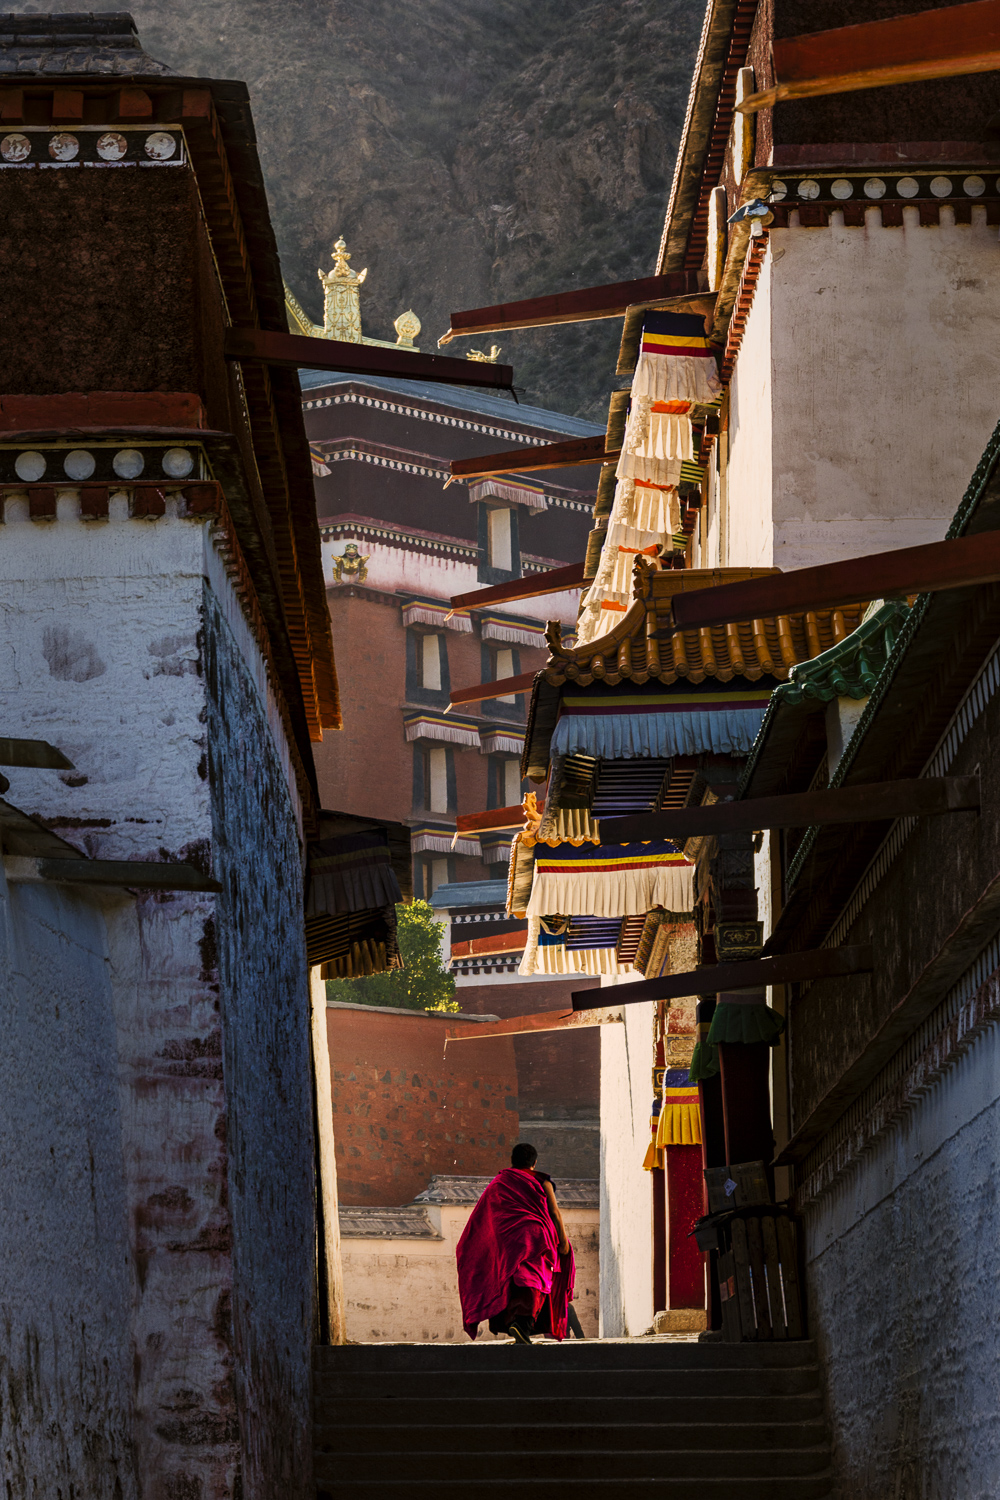 Travel Image of a monk walking between two buildings of the Labrang Monastery in China